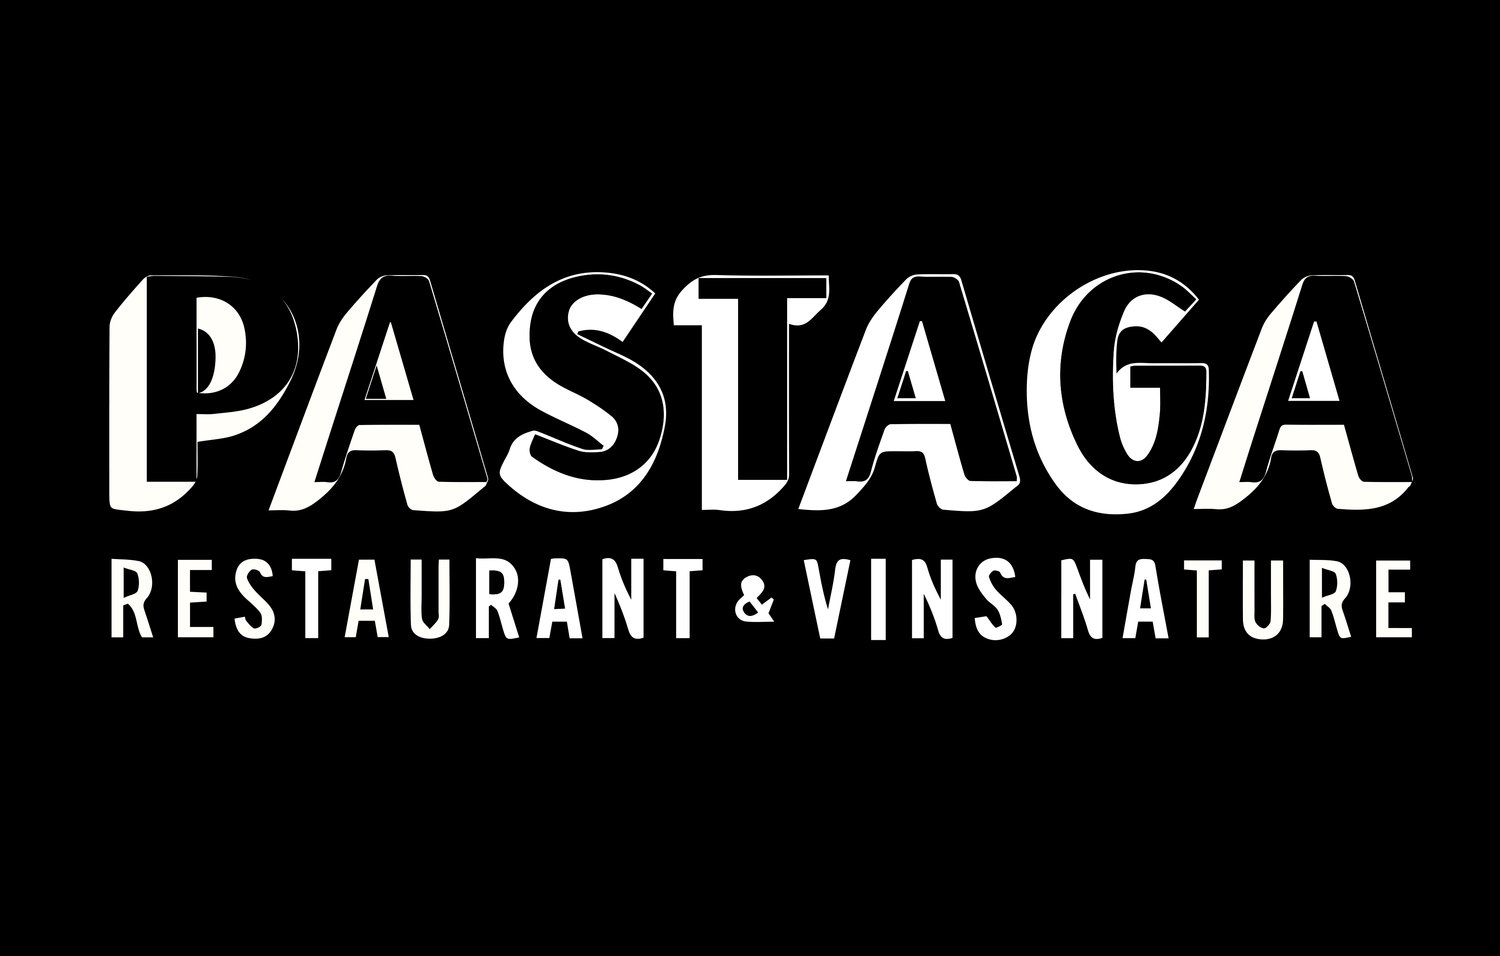 Pastaga, Vins nature & restaurant